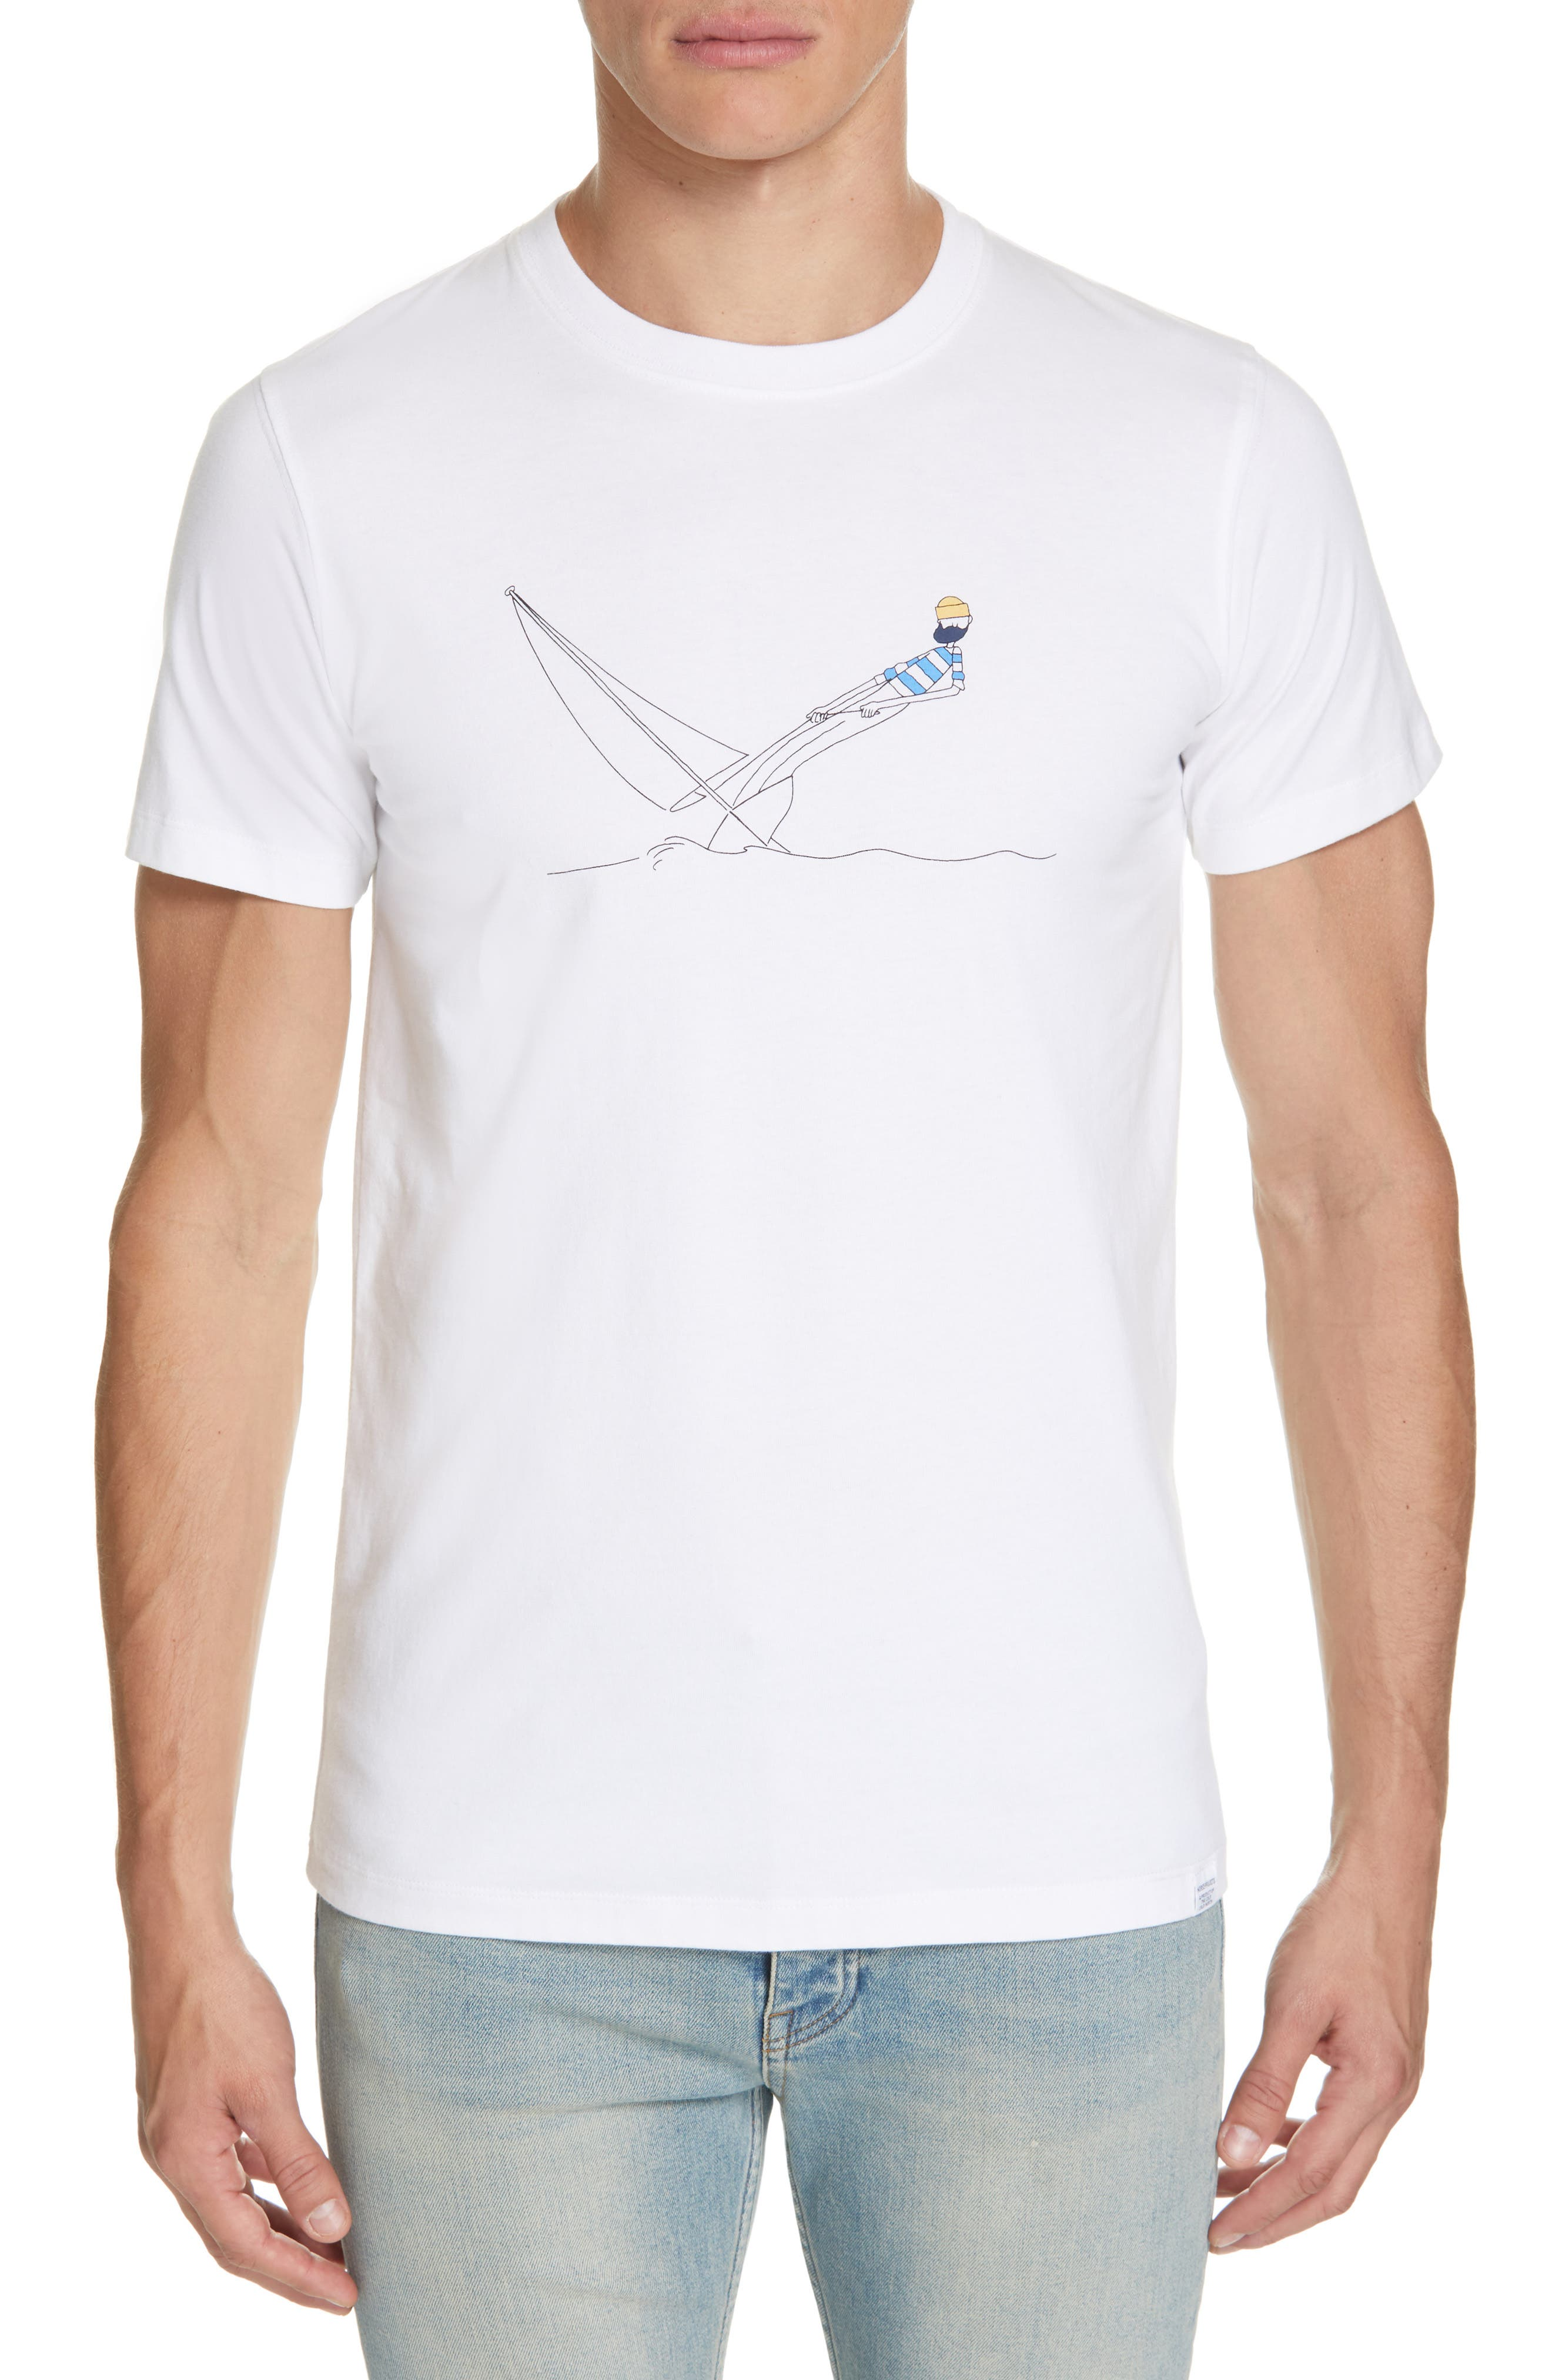 Daniel Frost - Hanging Graphic T-Shirt, Main, color, WHITE